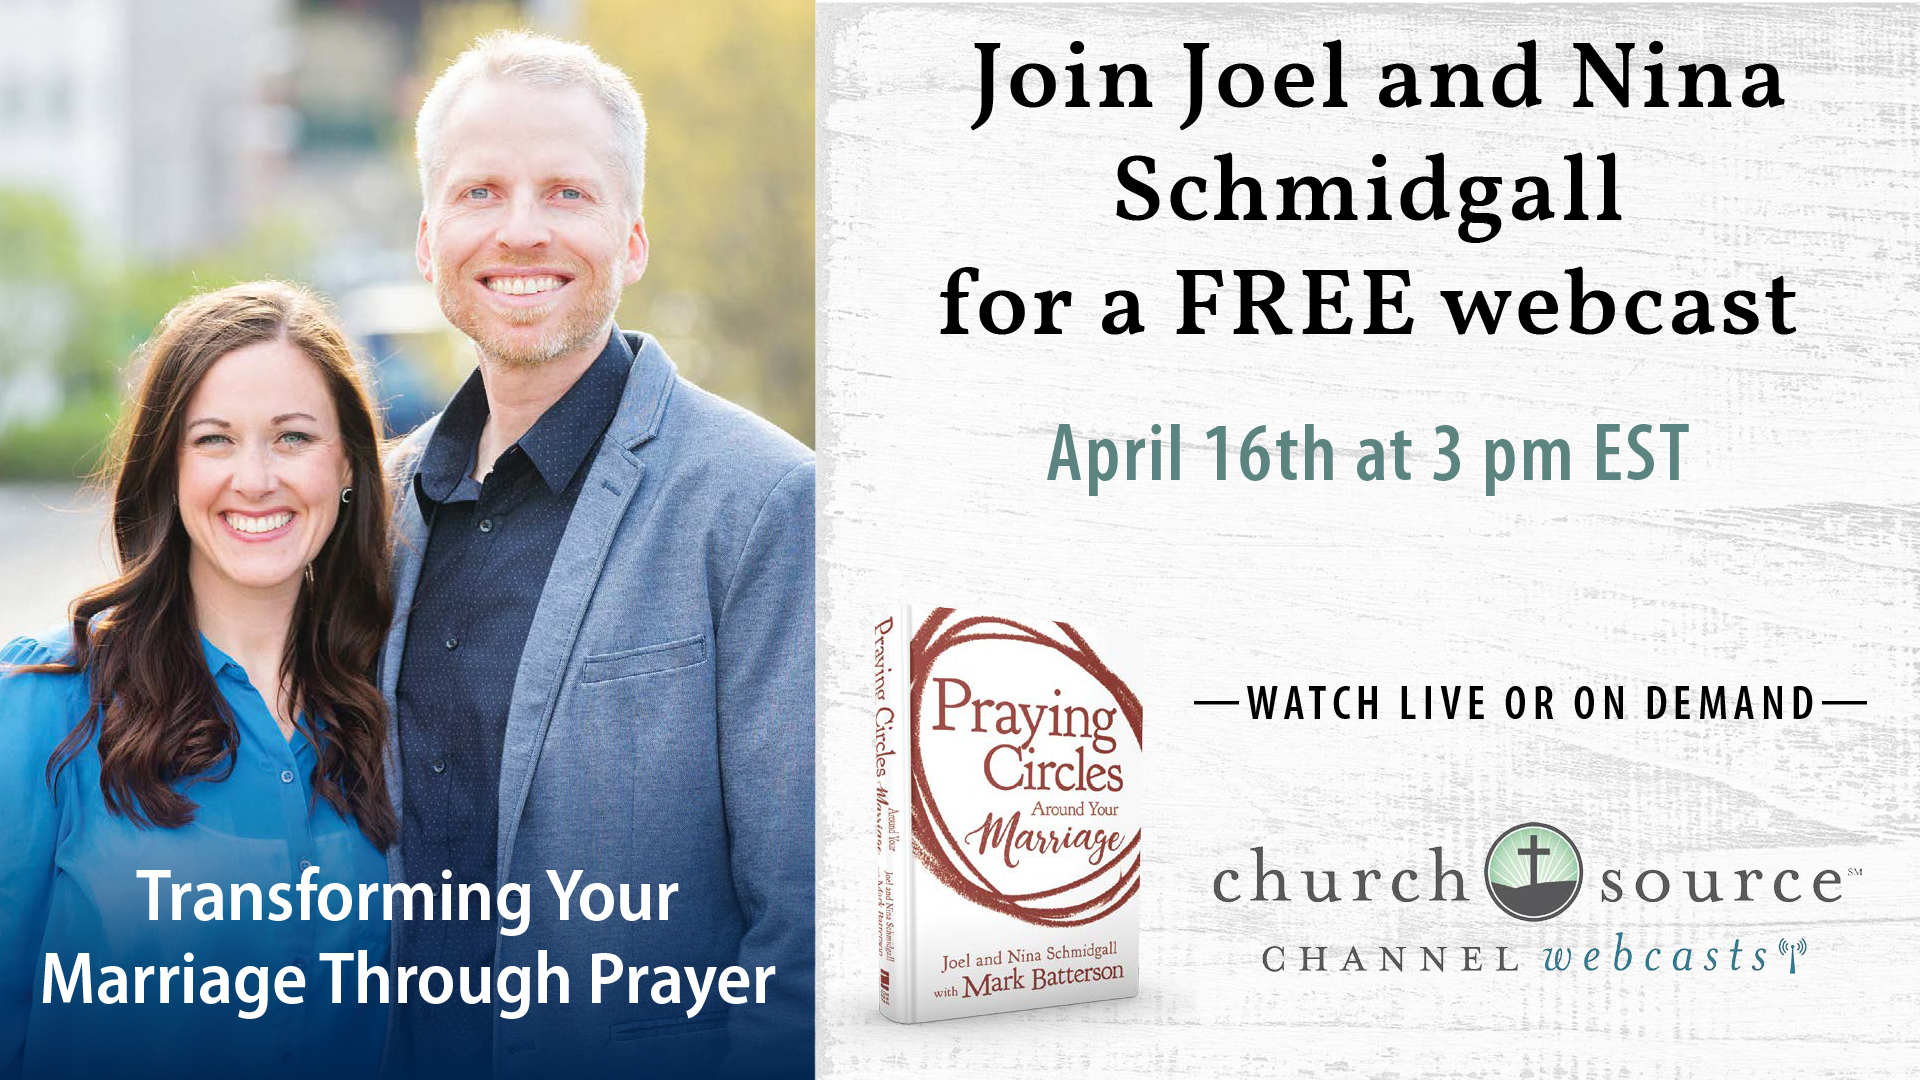 Transforming Your Marriage Through Prayer - Webcast with Joel and Nina Schmidgall